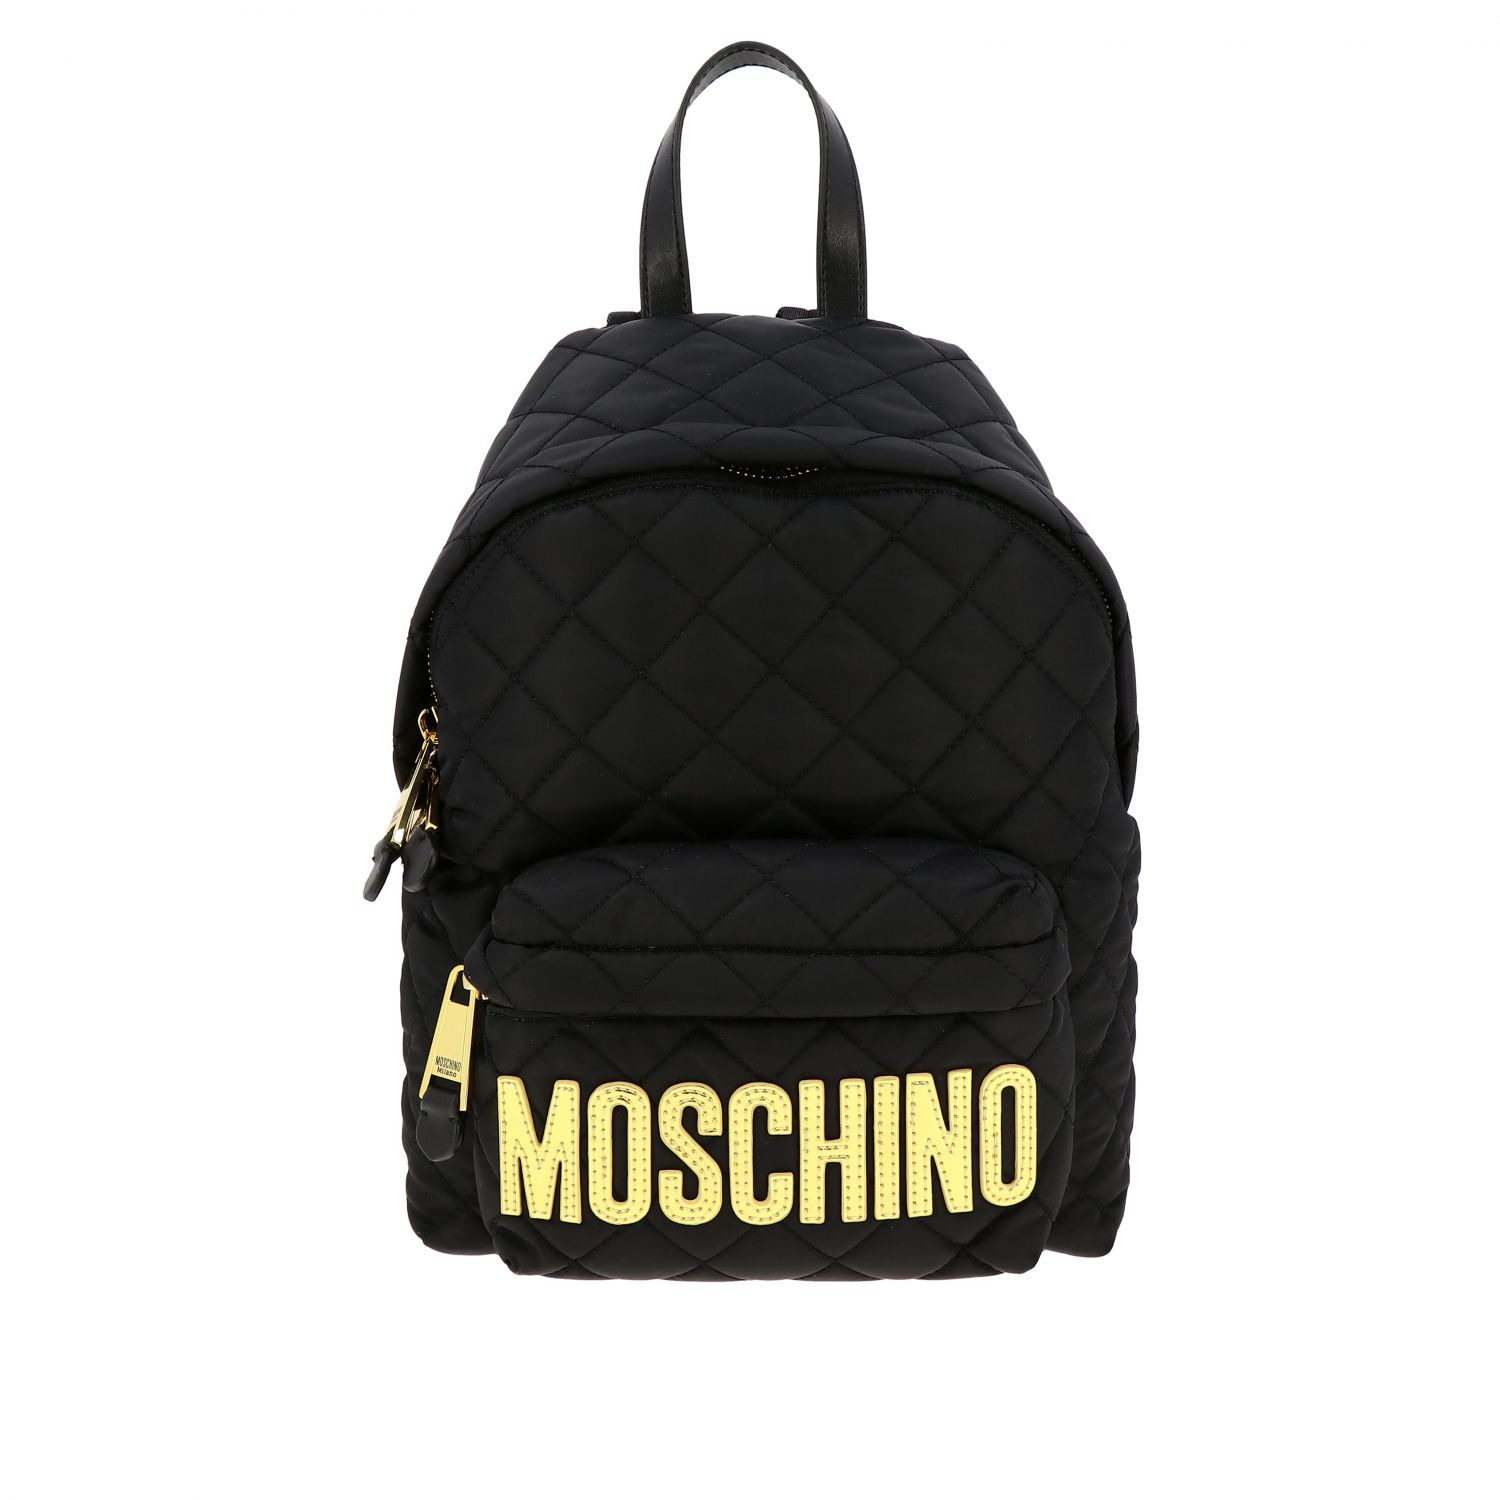 Zaino Moschino Couture in nylon trapuntato con big logo nero 1